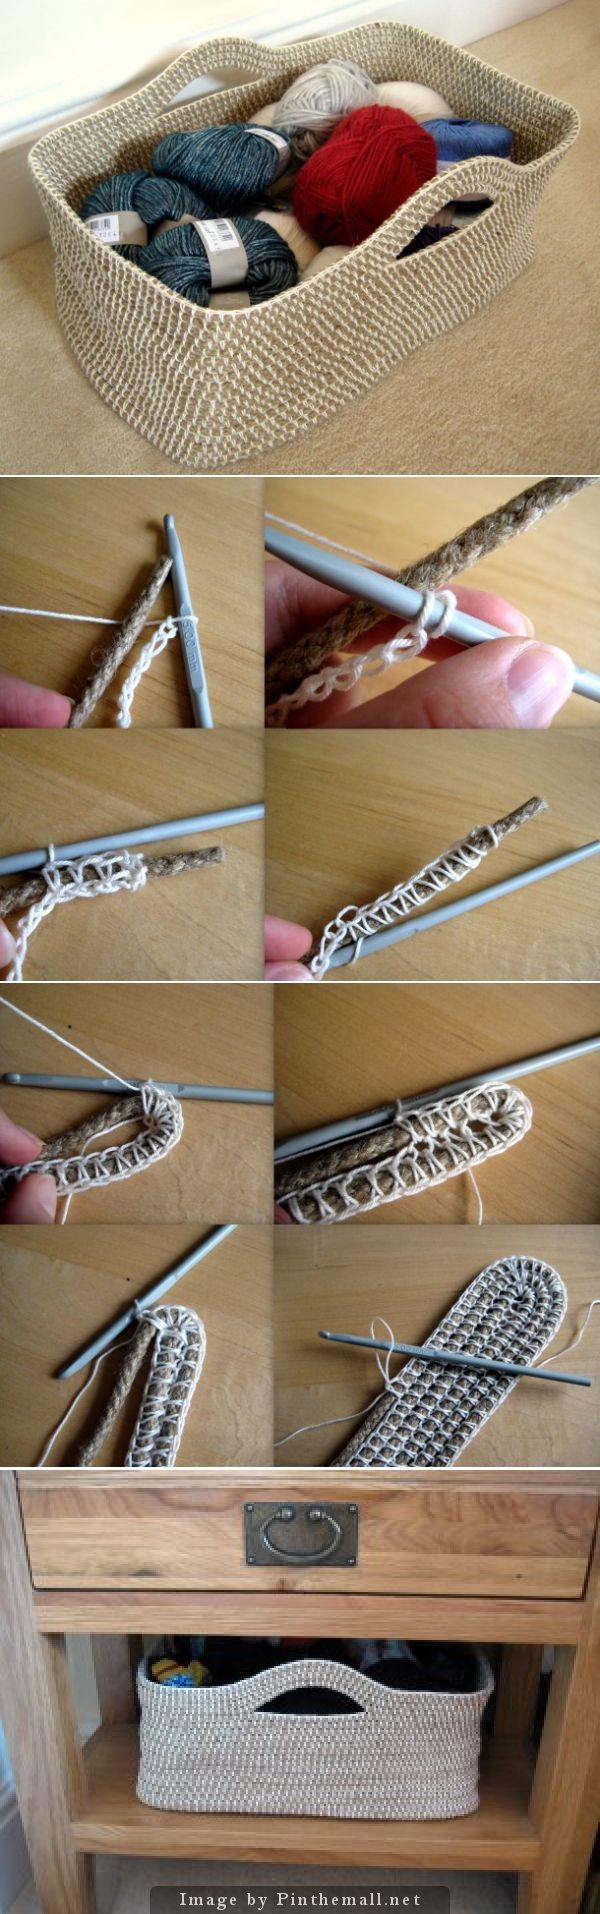 "Tutoría de ganchillo paso apaso: Cómo tejer una cesta sobre cuerda   -   Crochet Tutorial: How to crochet a basket over rope. Lots of informative text and photos to make a sturdy rope container.""o"